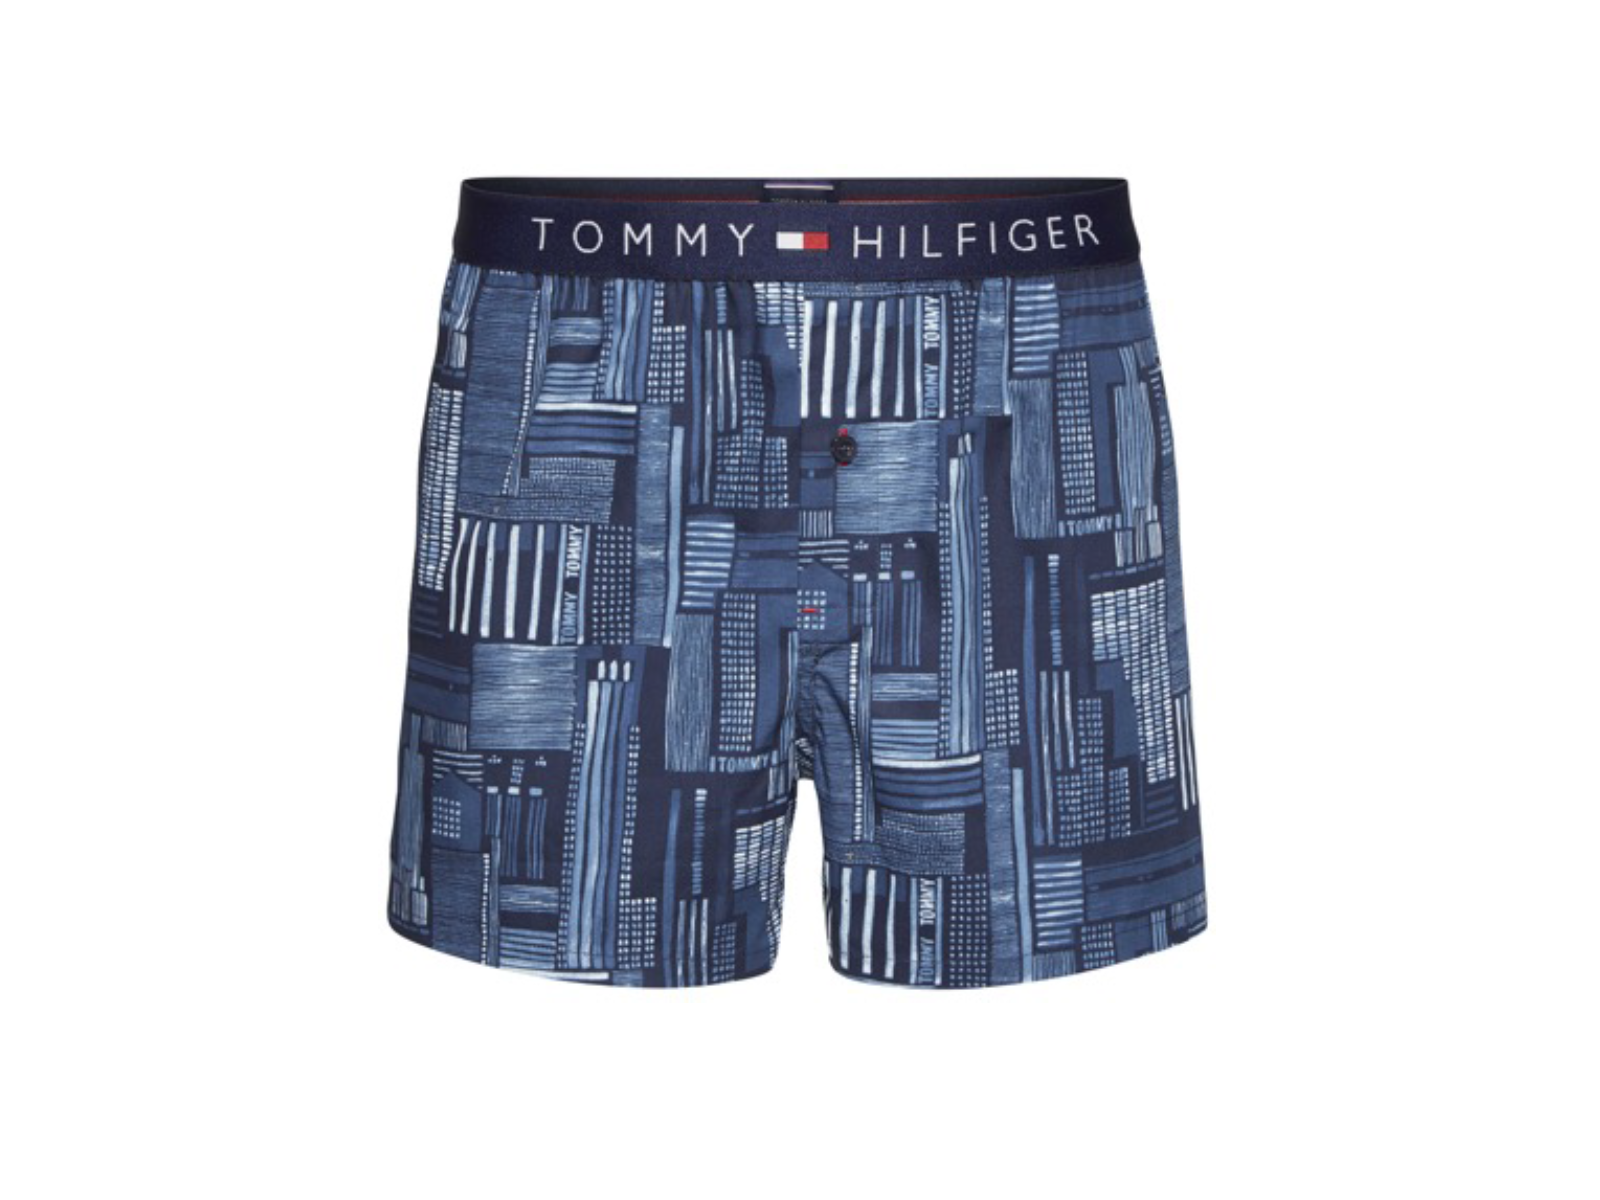 tommy hilfiger woven boxer 427 hommes cale ons lingerie coton sous v tement ebay. Black Bedroom Furniture Sets. Home Design Ideas